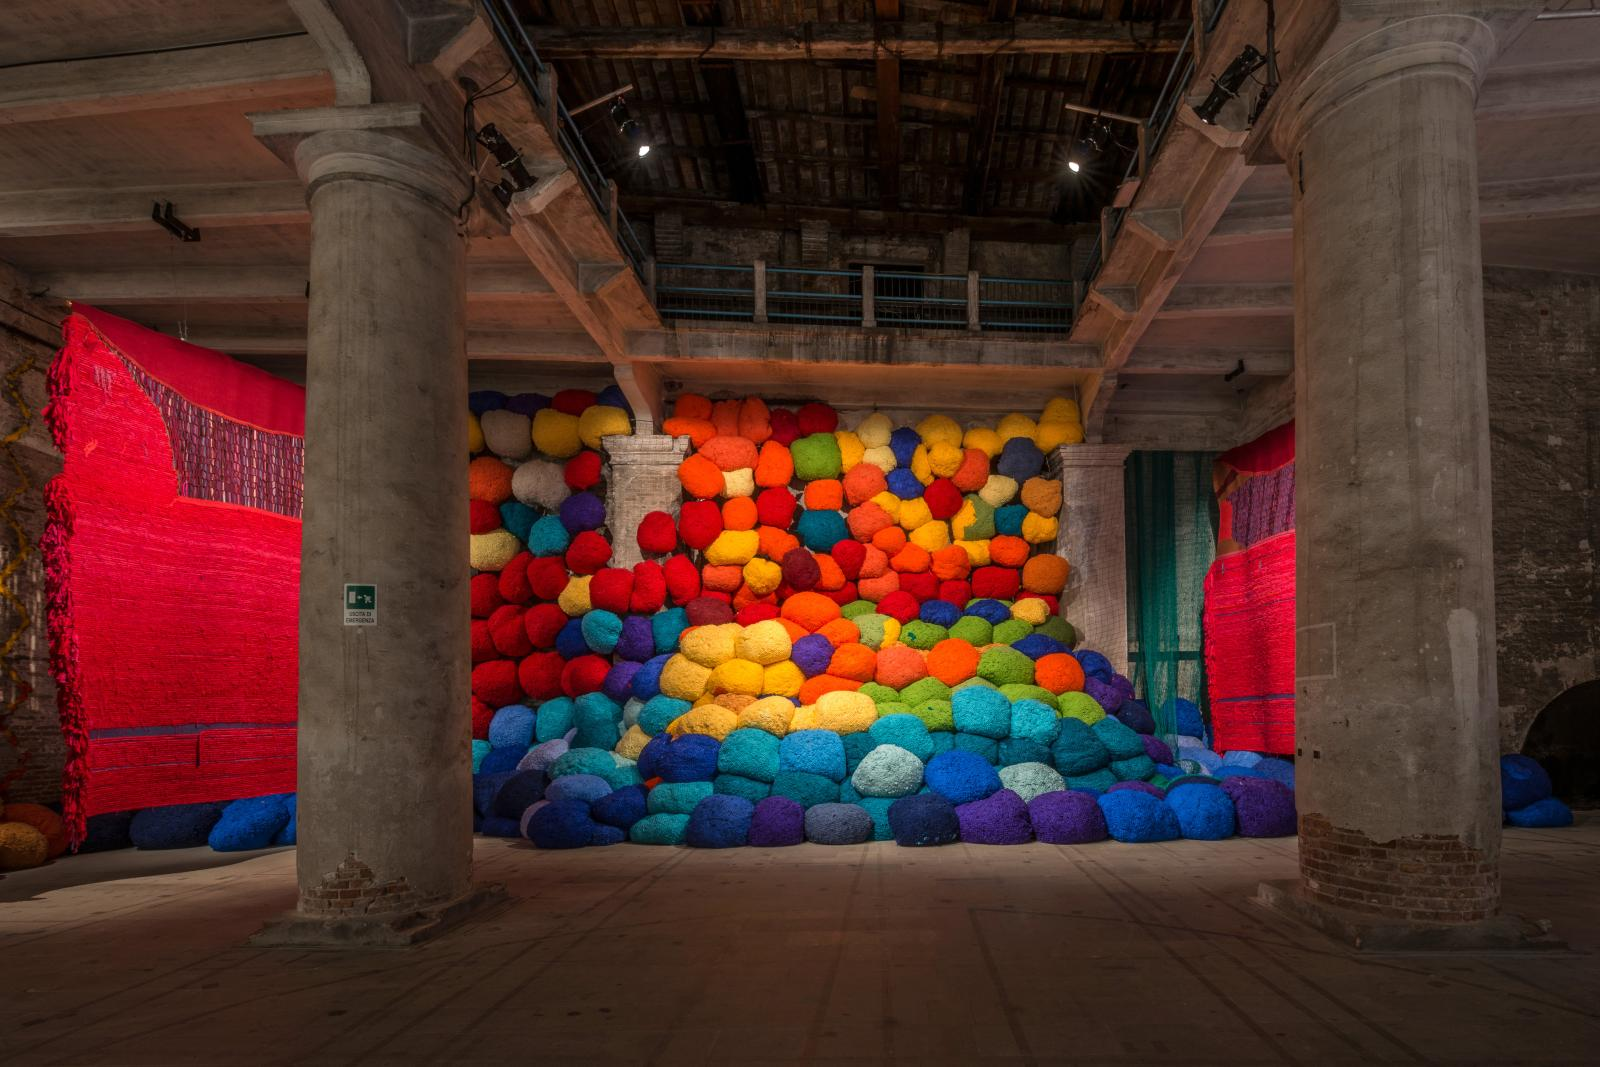 Sheila Hicks (née en 1934), Scalata al di la dei terreni cromatici/Escalade Beyond Chromatic Lands, 2016-2017, installation, technique mixte, 6 x 16 x